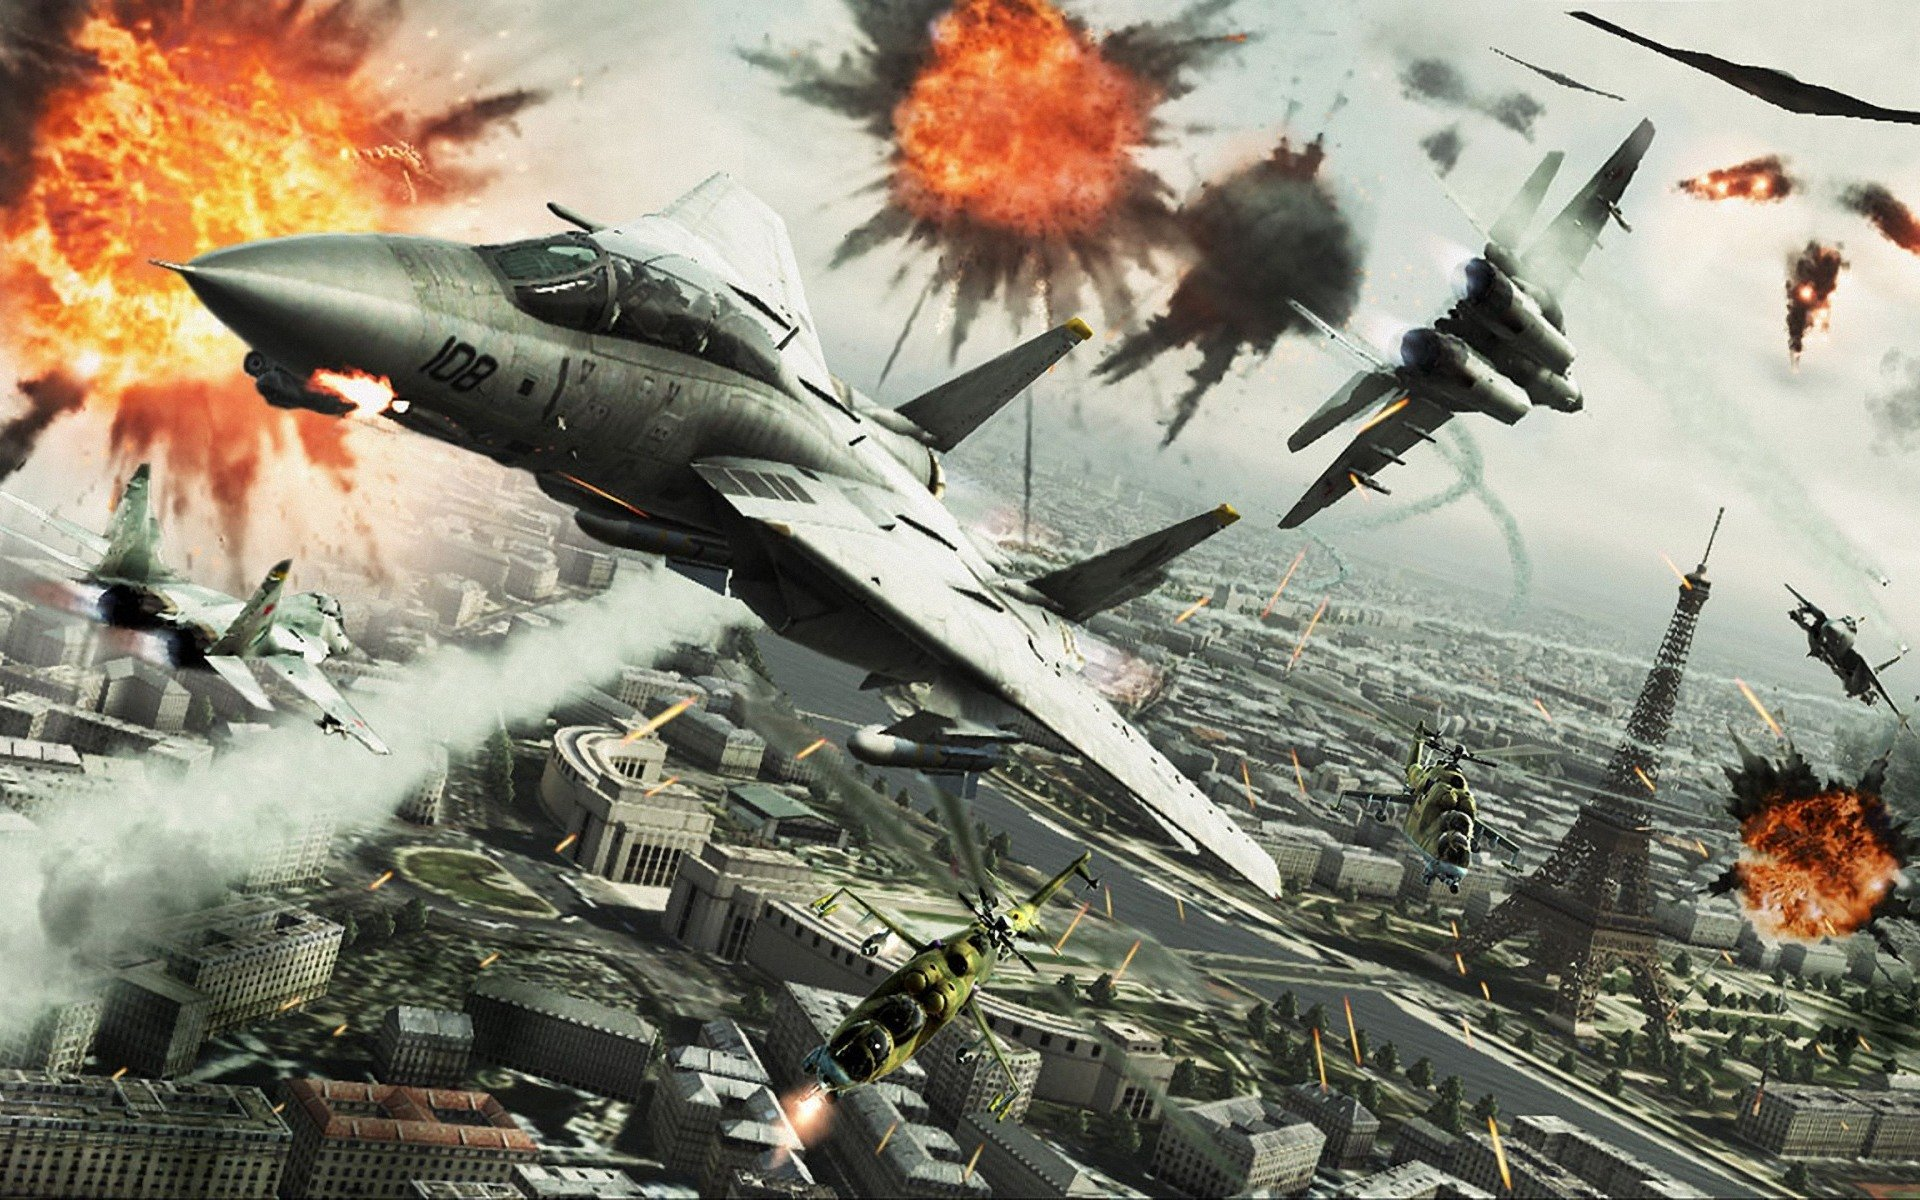 Ace Combat VII 1920x1200 Wallpapers 1920x1200 Wallpapers Pictures 1920x1200